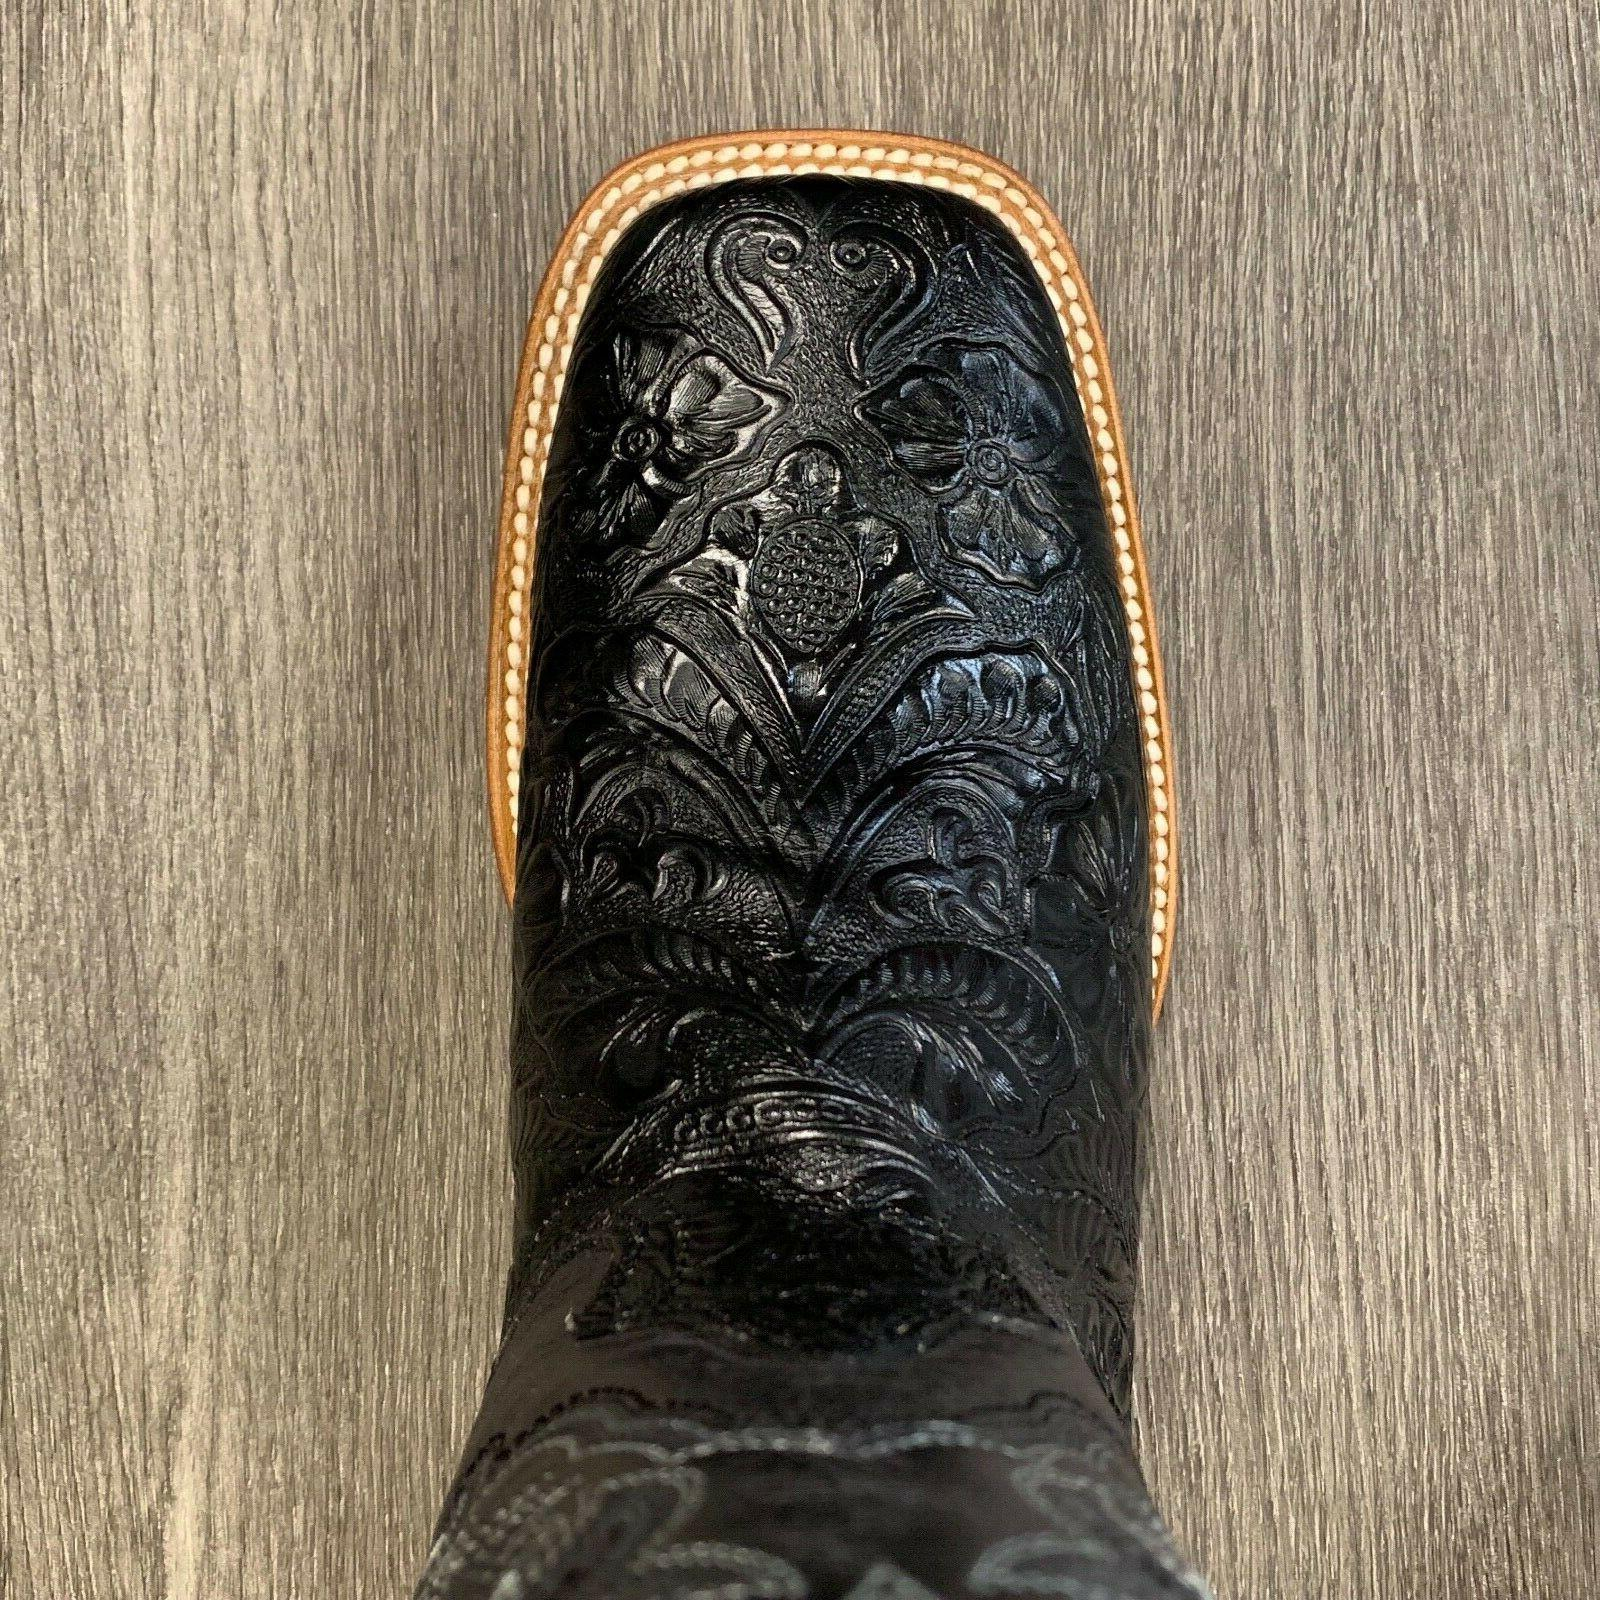 MEN'S RODEO REYWELT BRAND LEATHER WESTERN